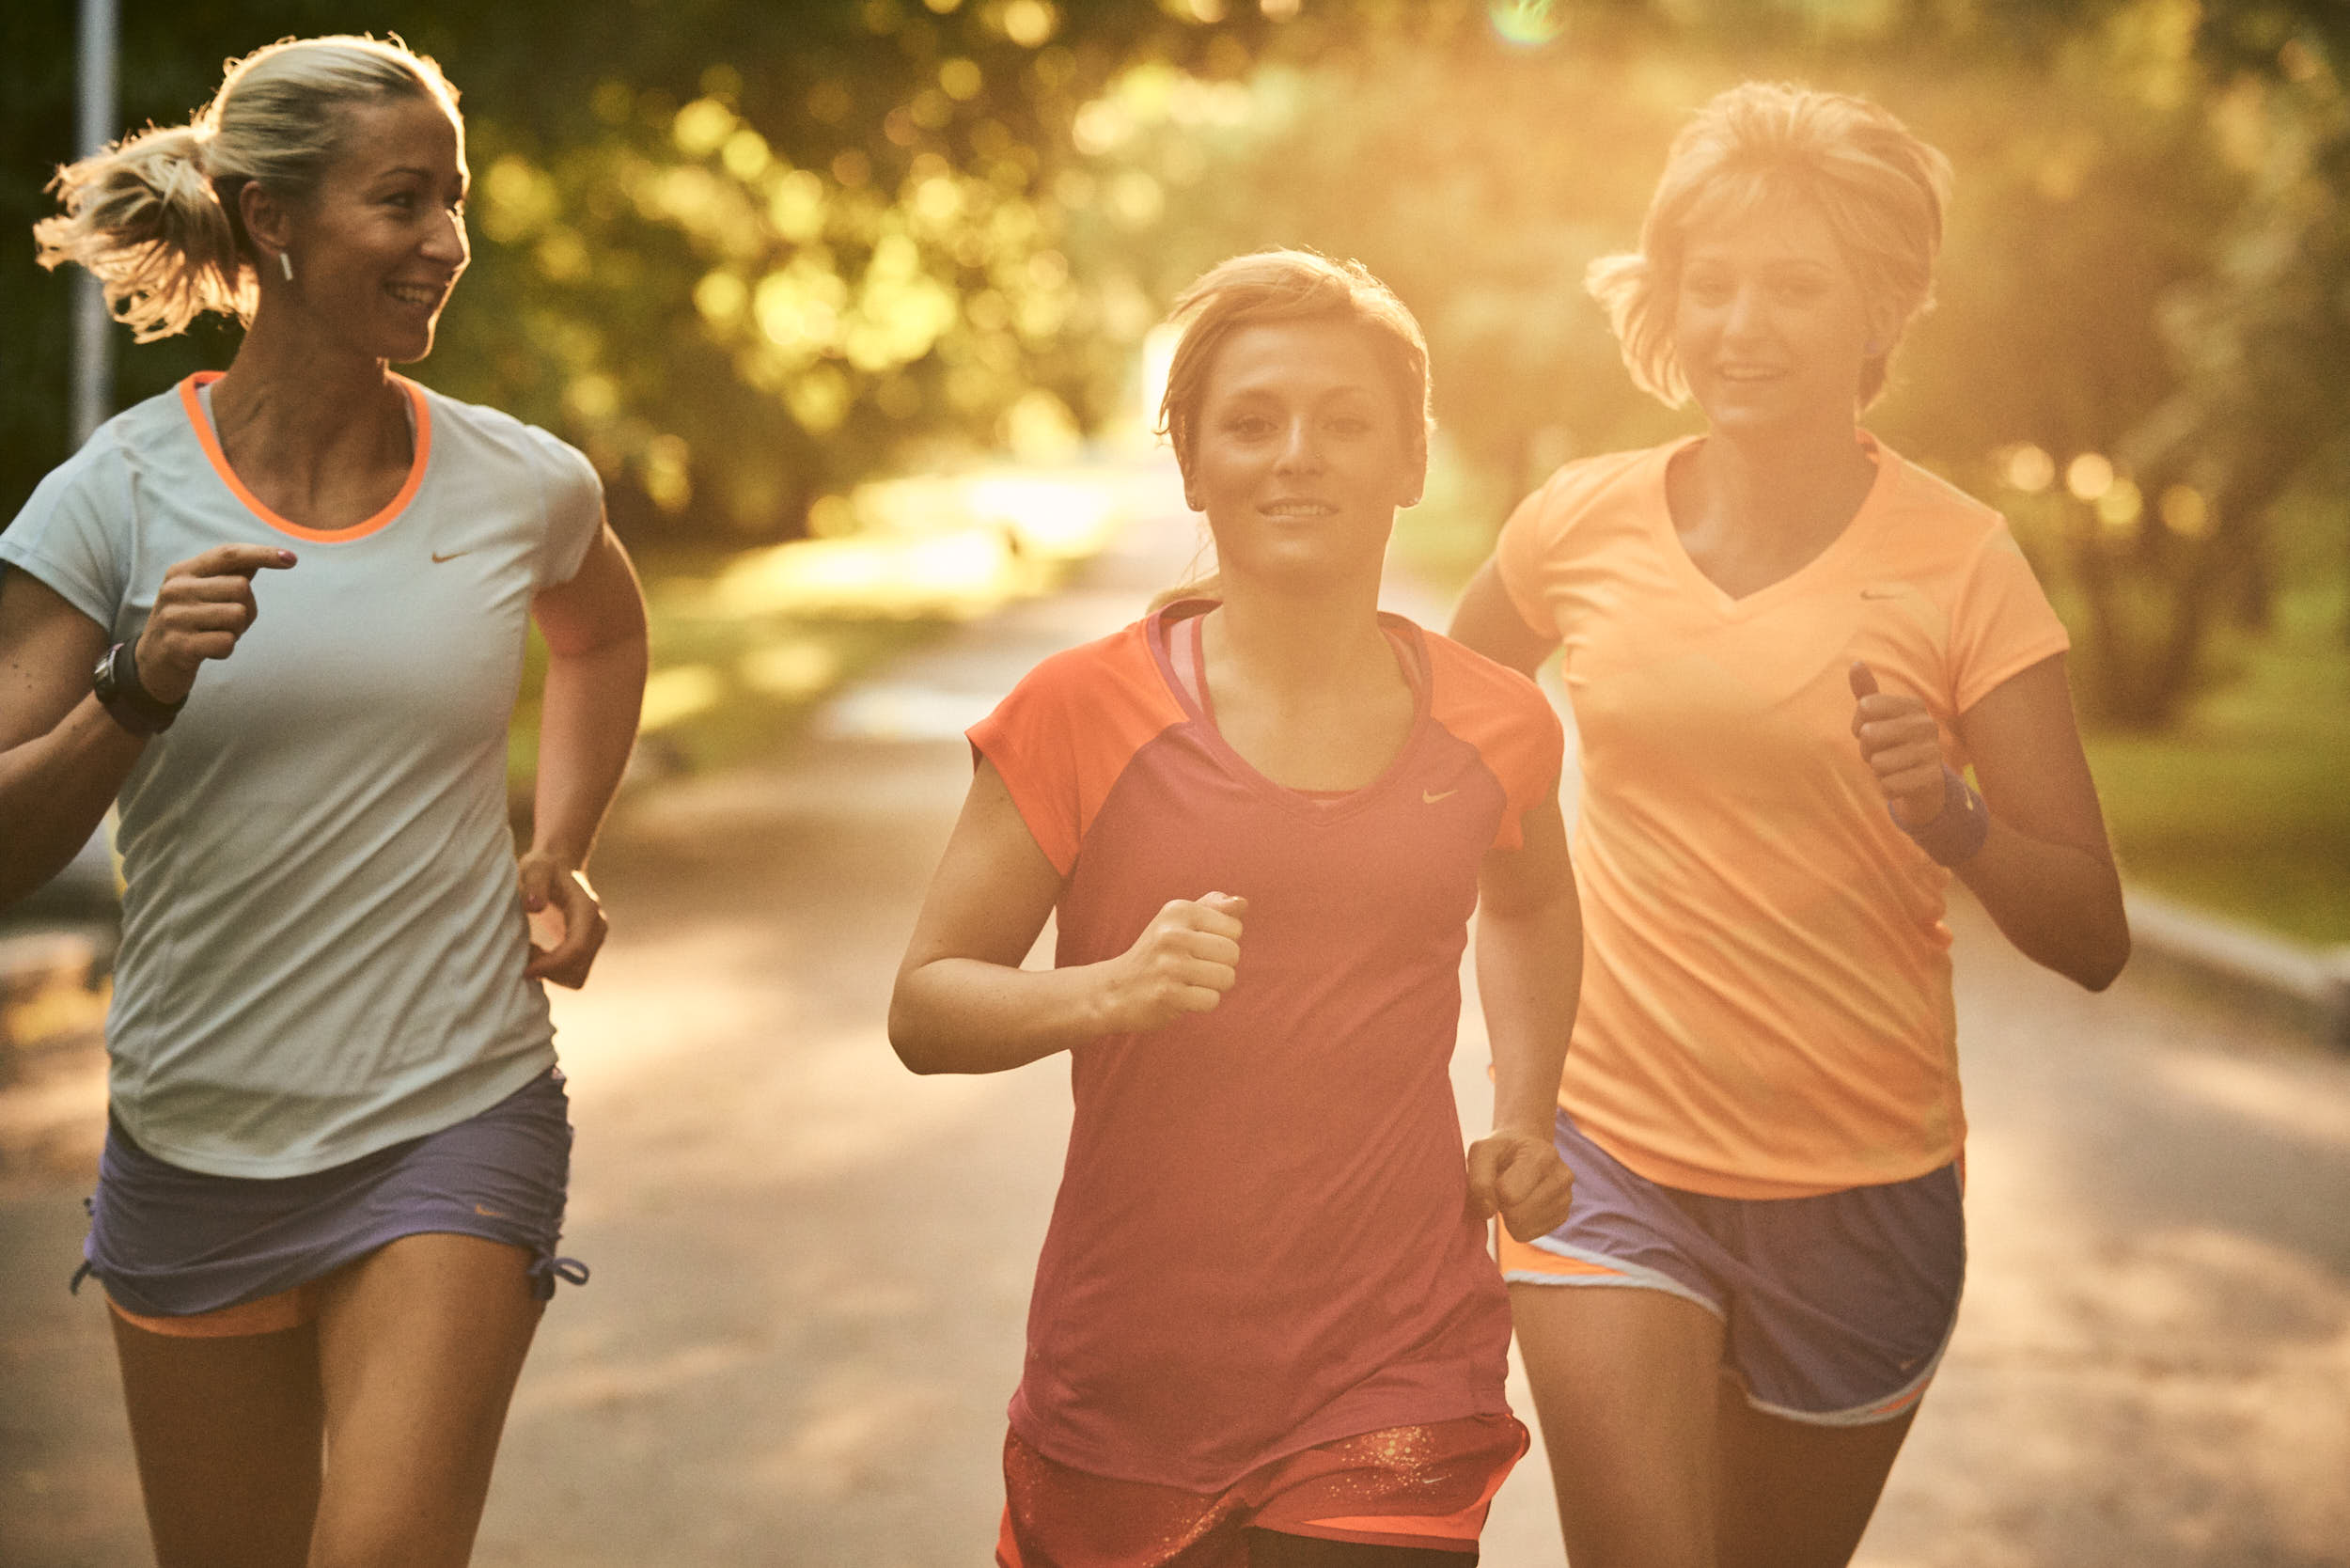 Group of girls running in a park with sunflare coming through the leaves.